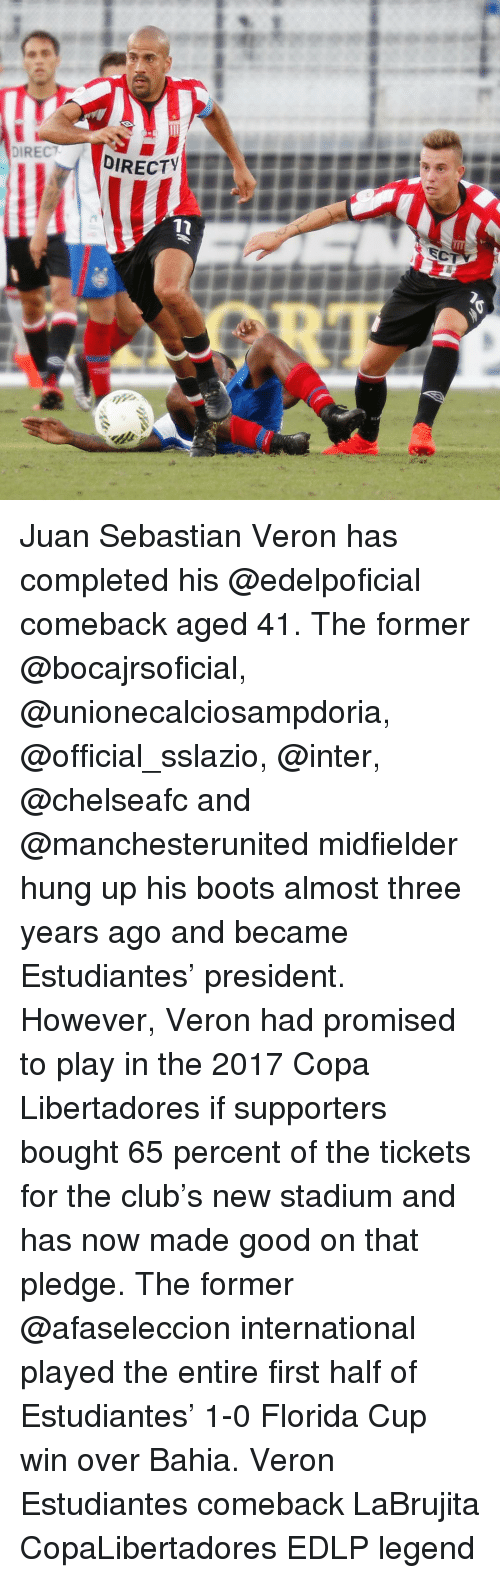 veron: DIRECT  DIRECTV  ECT Juan Sebastian Veron has completed his @edelpoficial comeback aged 41. The former @bocajrsoficial, @unionecalciosampdoria, @official_sslazio, @inter, @chelseafc and @manchesterunited midfielder hung up his boots almost three years ago and became Estudiantes' president. However, Veron had promised to play in the 2017 Copa Libertadores if supporters bought 65 percent of the tickets for the club's new stadium and has now made good on that pledge. The former @afaseleccion international played the entire first half of Estudiantes' 1-0 Florida Cup win over Bahia. Veron Estudiantes comeback LaBrujita CopaLibertadores EDLP legend